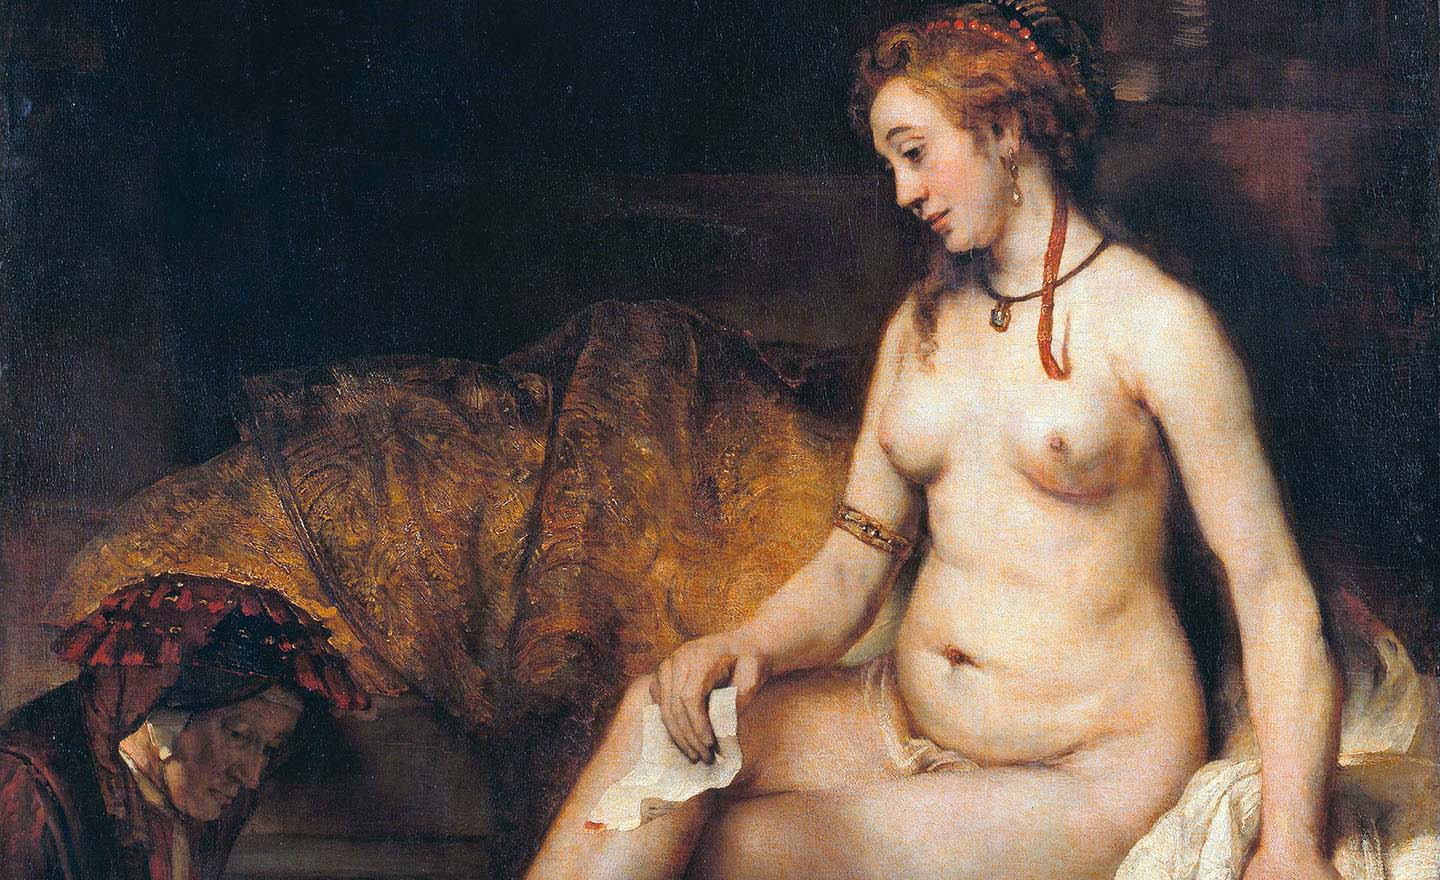 Bathsheba with David's letter, by Rembrandt